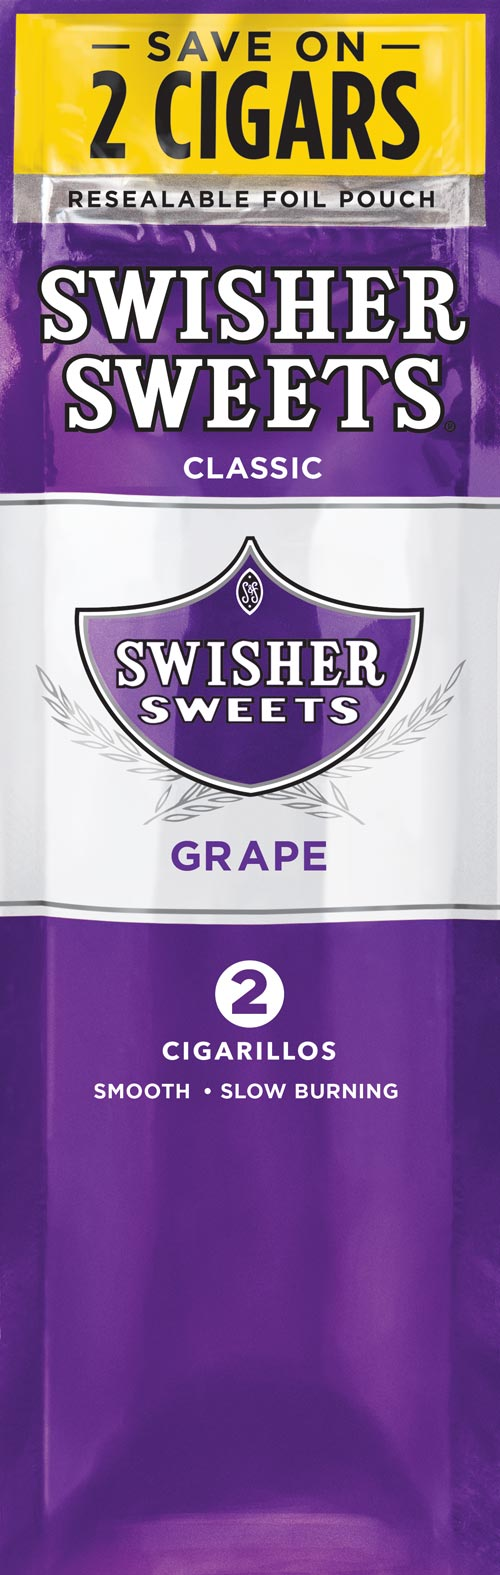 Swisher Sweets Cigarillos - Grape